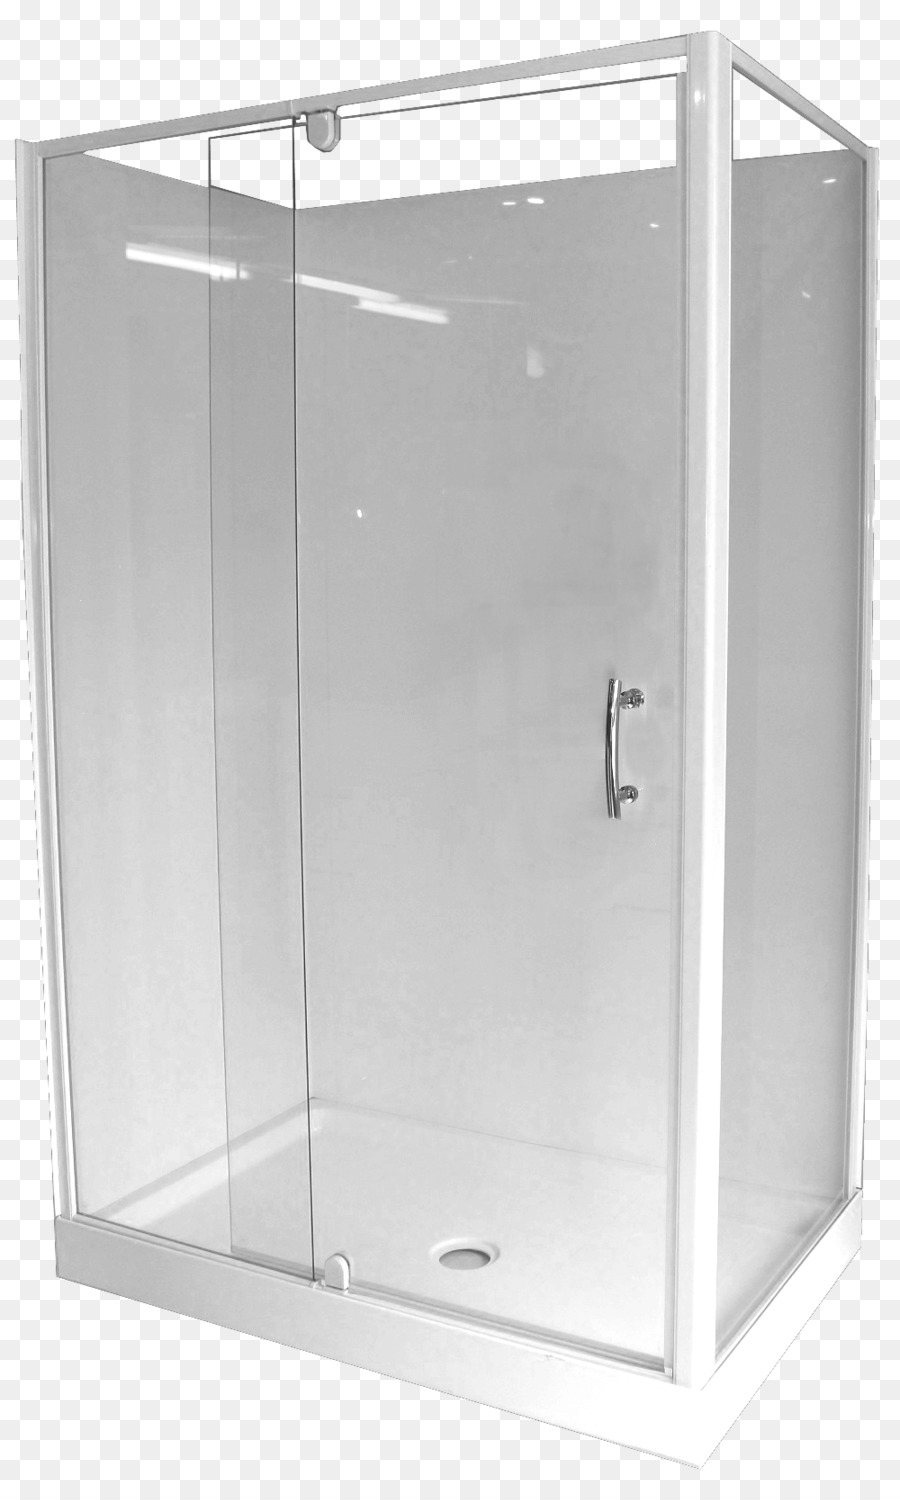 Shower Cubicle Bathroom Product Design - bath shower png download ...